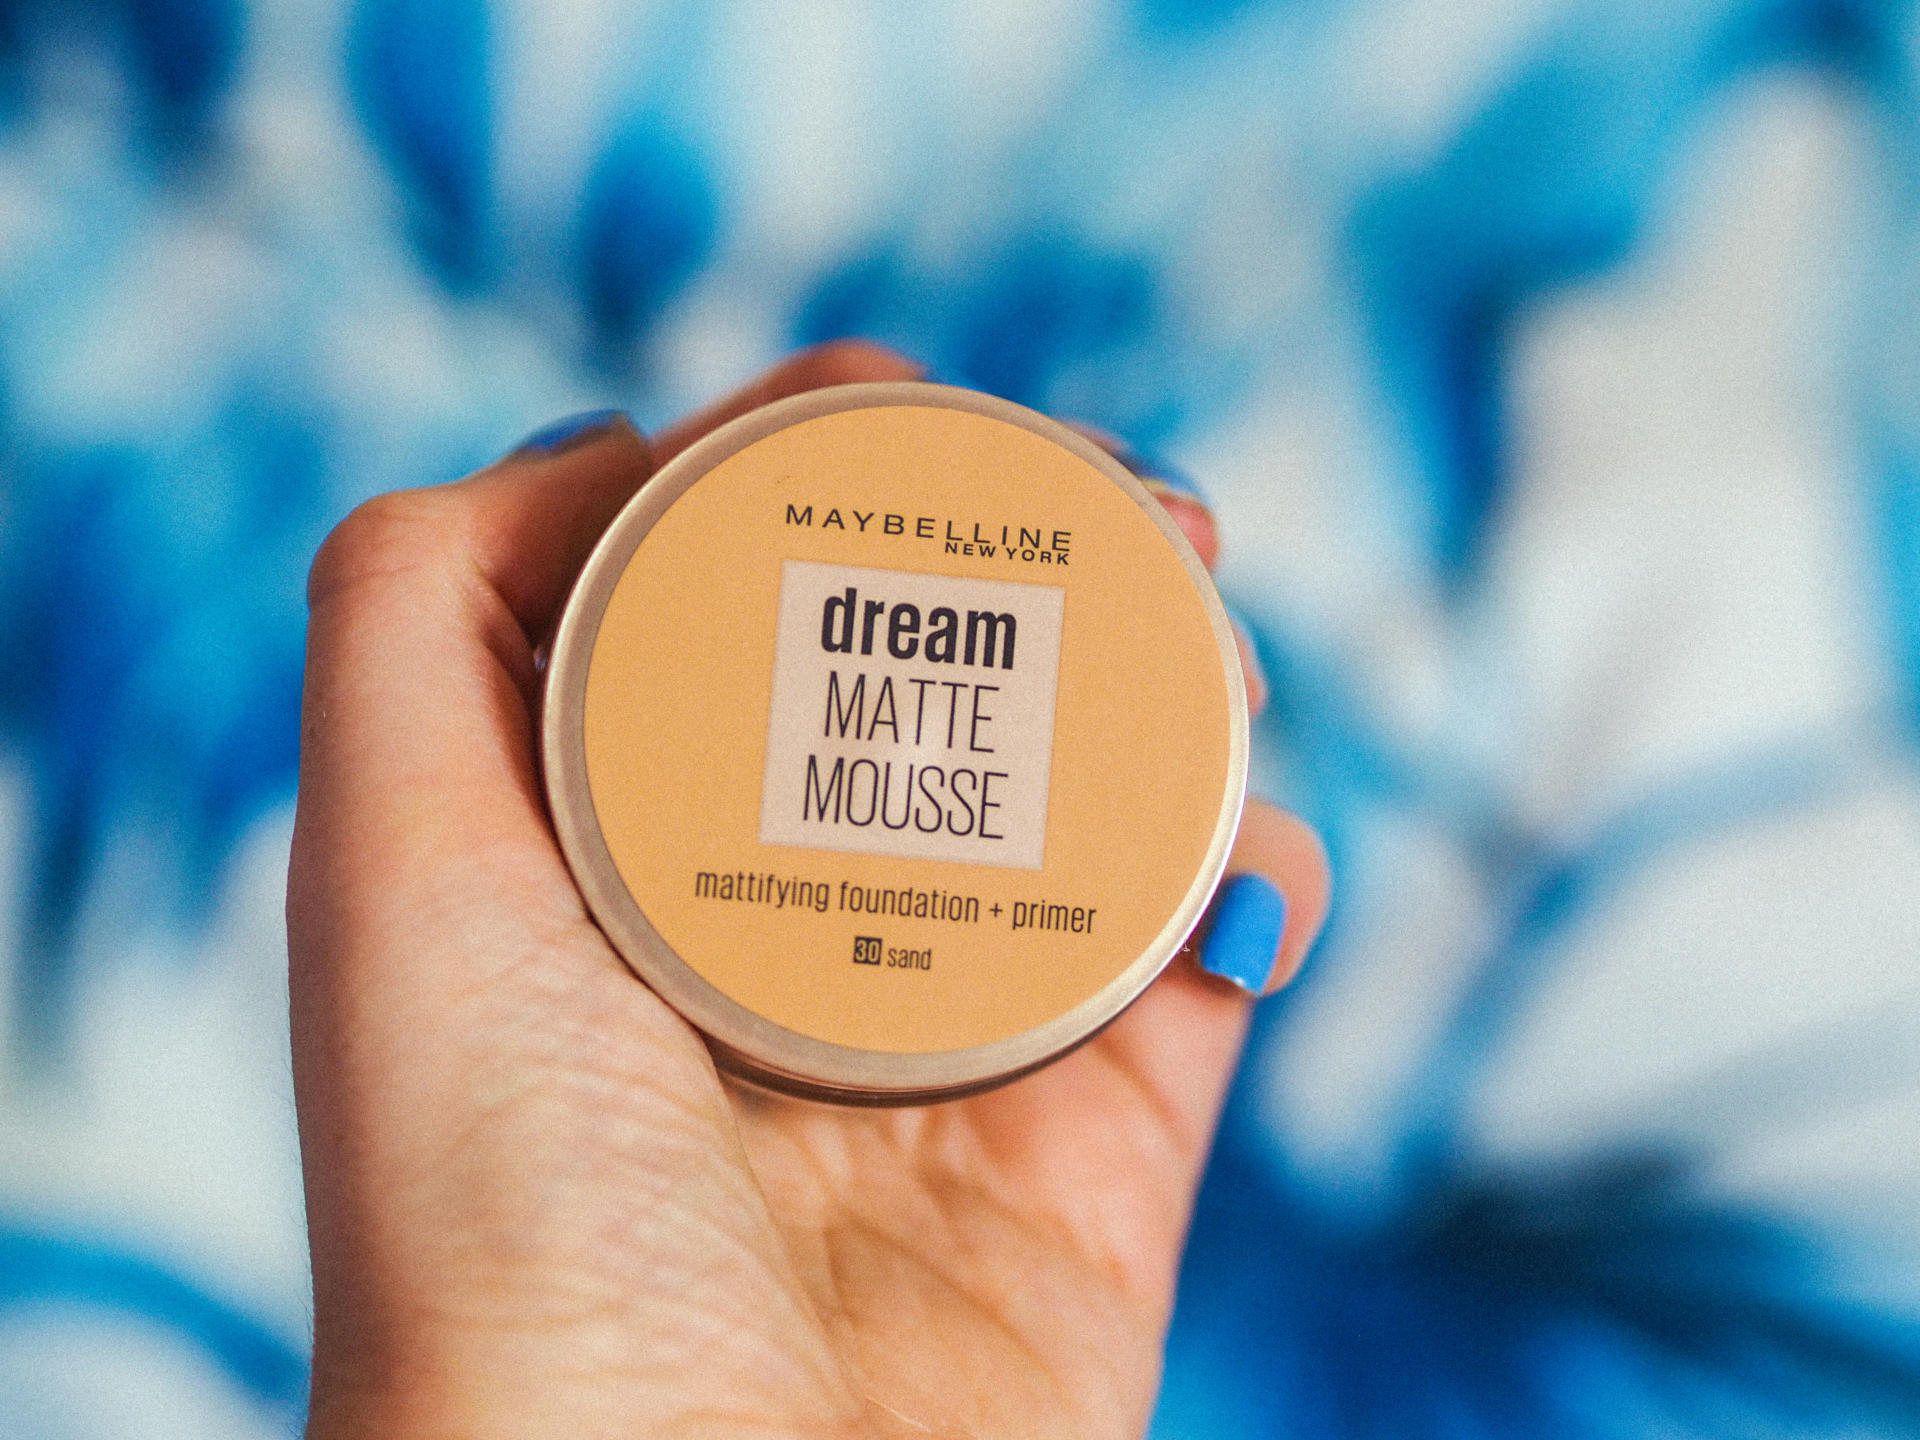 Throwback: Trying Maybelline Dream Matte Mousse in 2019! - Rachel Nicole UK Blogger